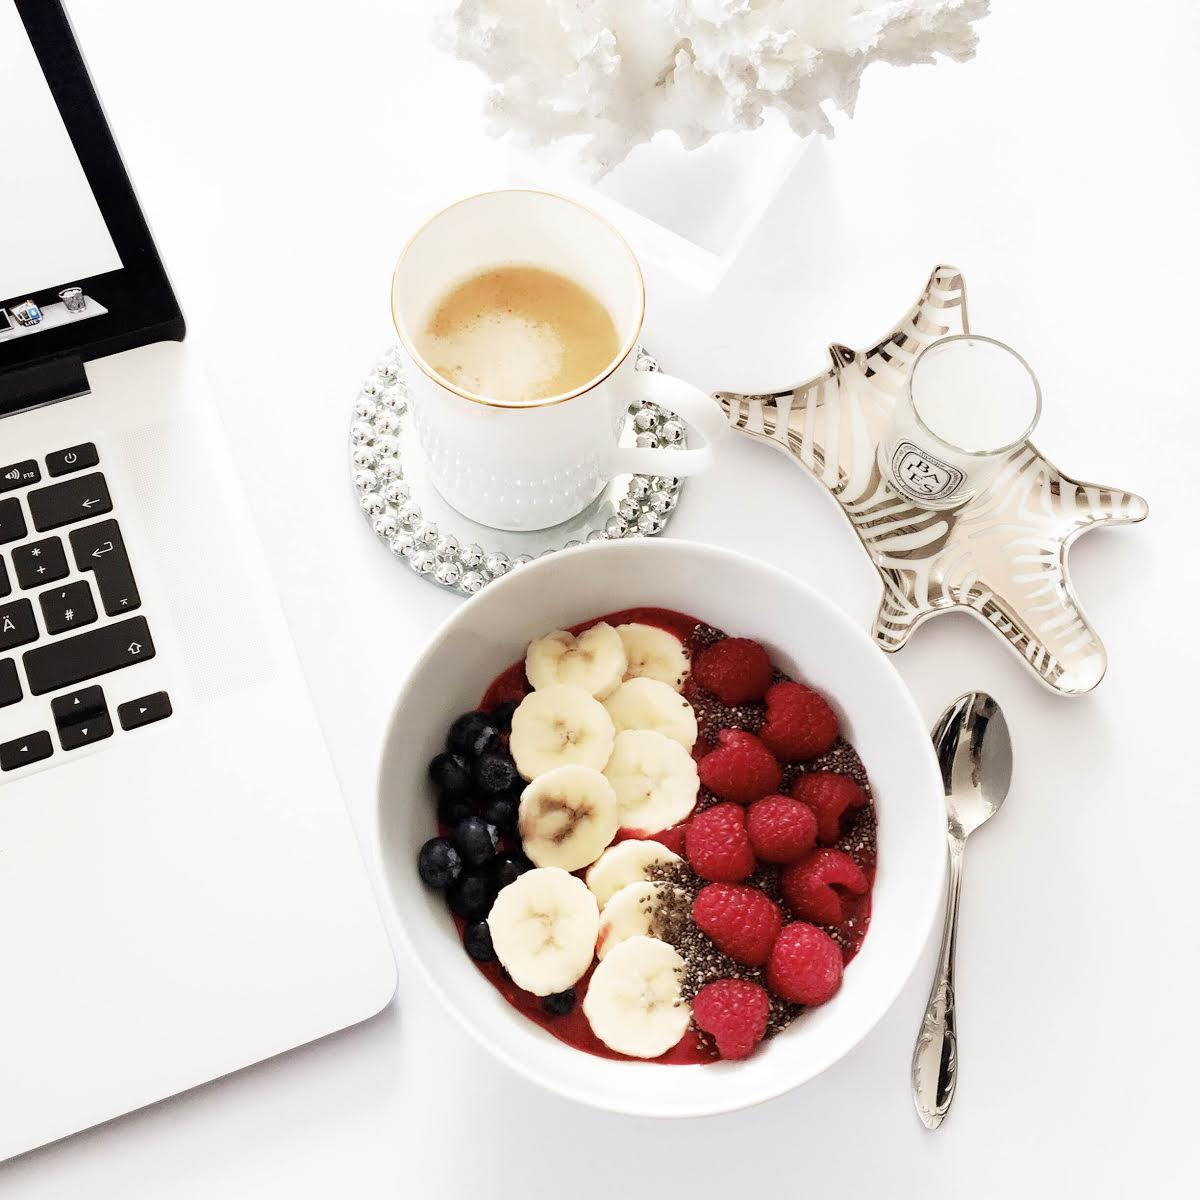 breakfast-situation-fruits-fashionhippieloves